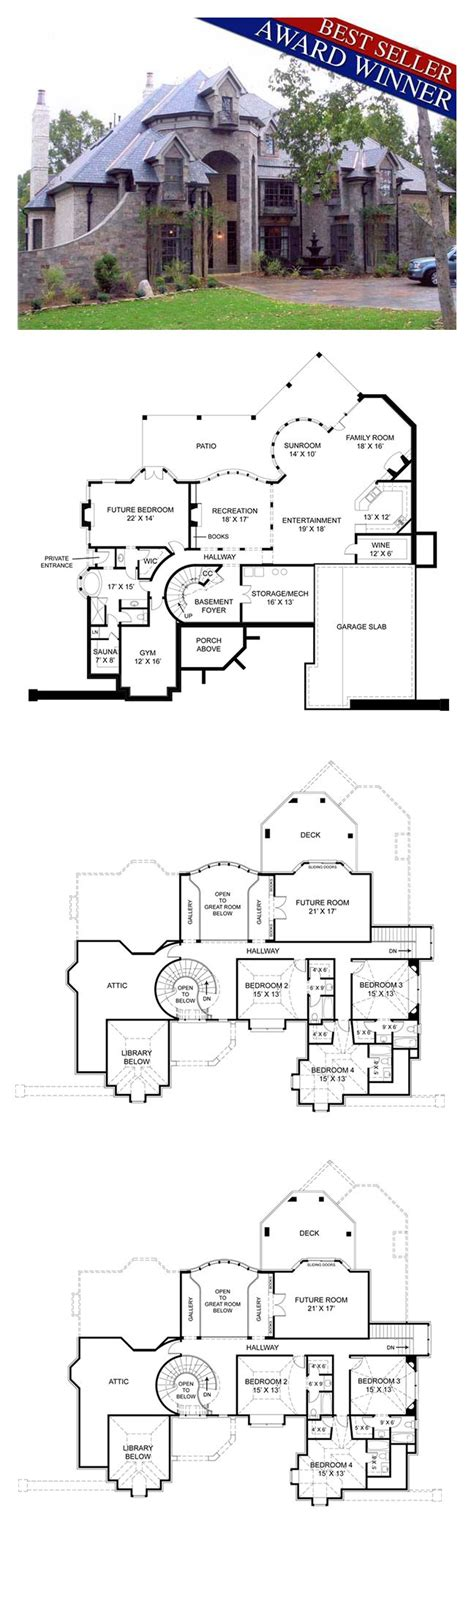 gothic tudor floor plans gothic tudor floor plans house pretentious mansion revival